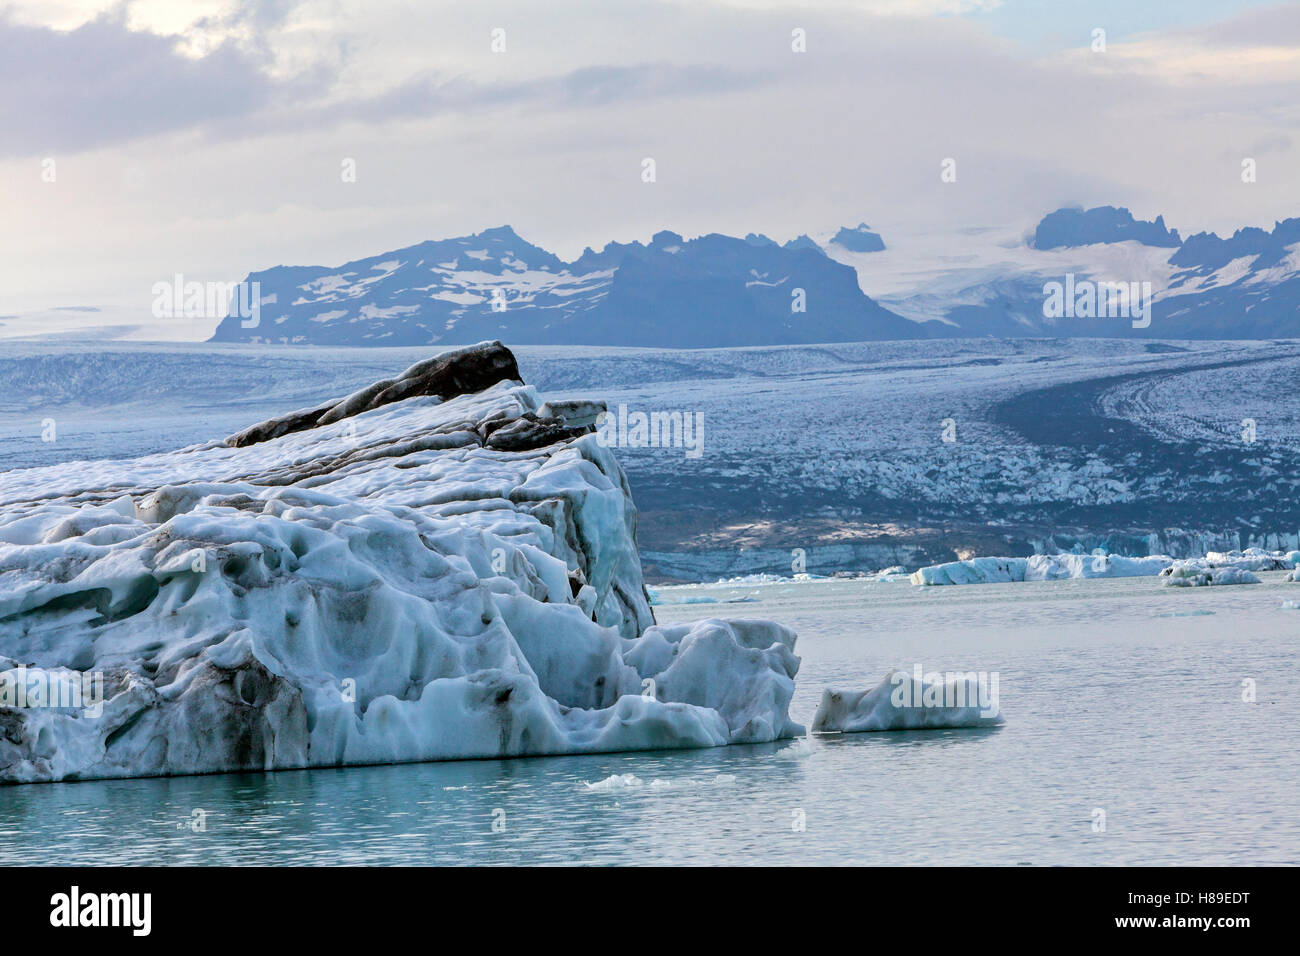 A view of a glacier in the Jokulsarion Glacier Lagoon in Iceland. - Stock Image